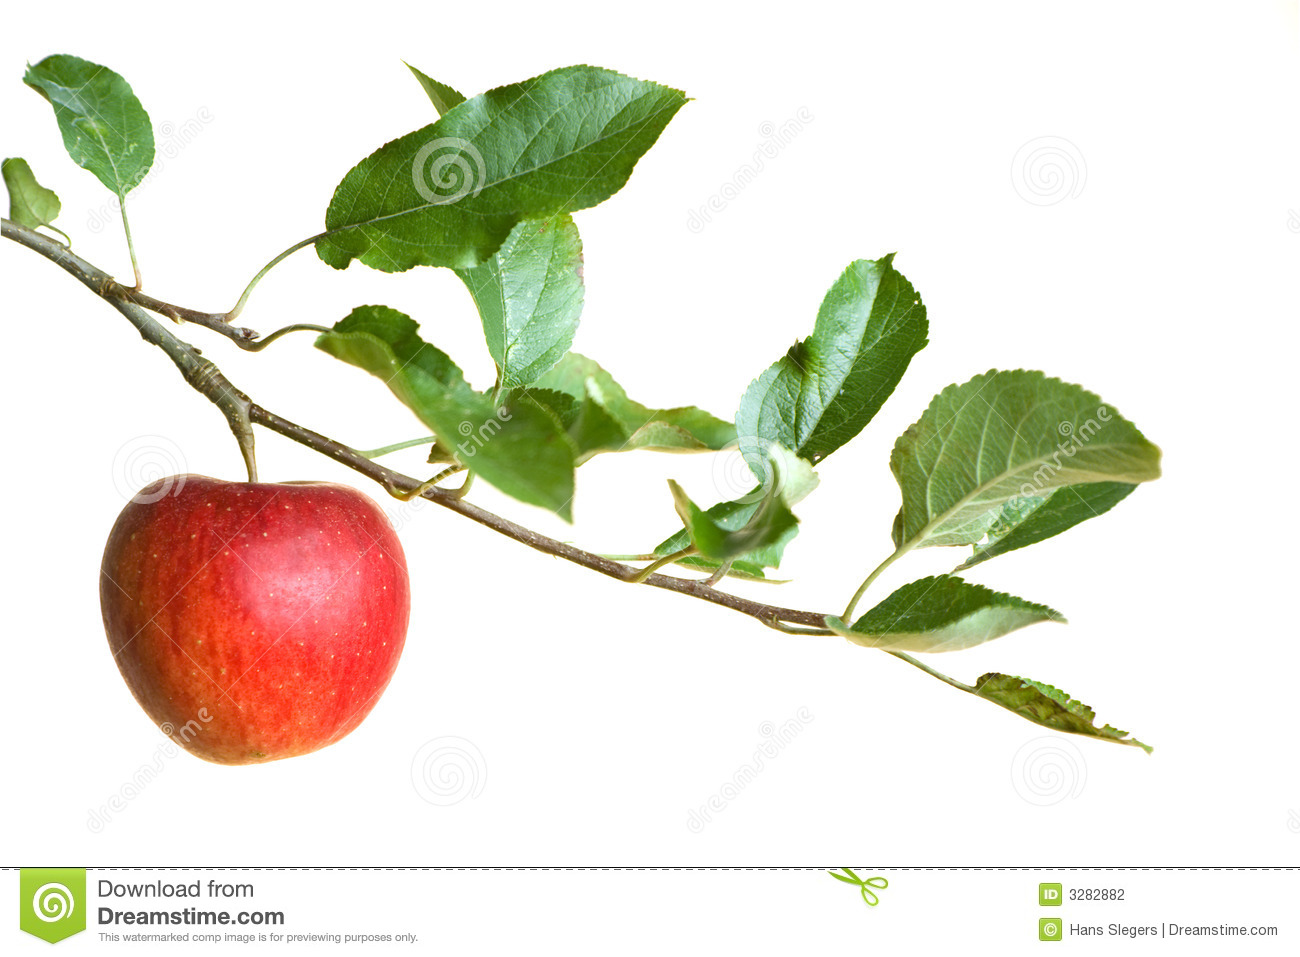 Apple on a branch isolated on a white background with copy-space.